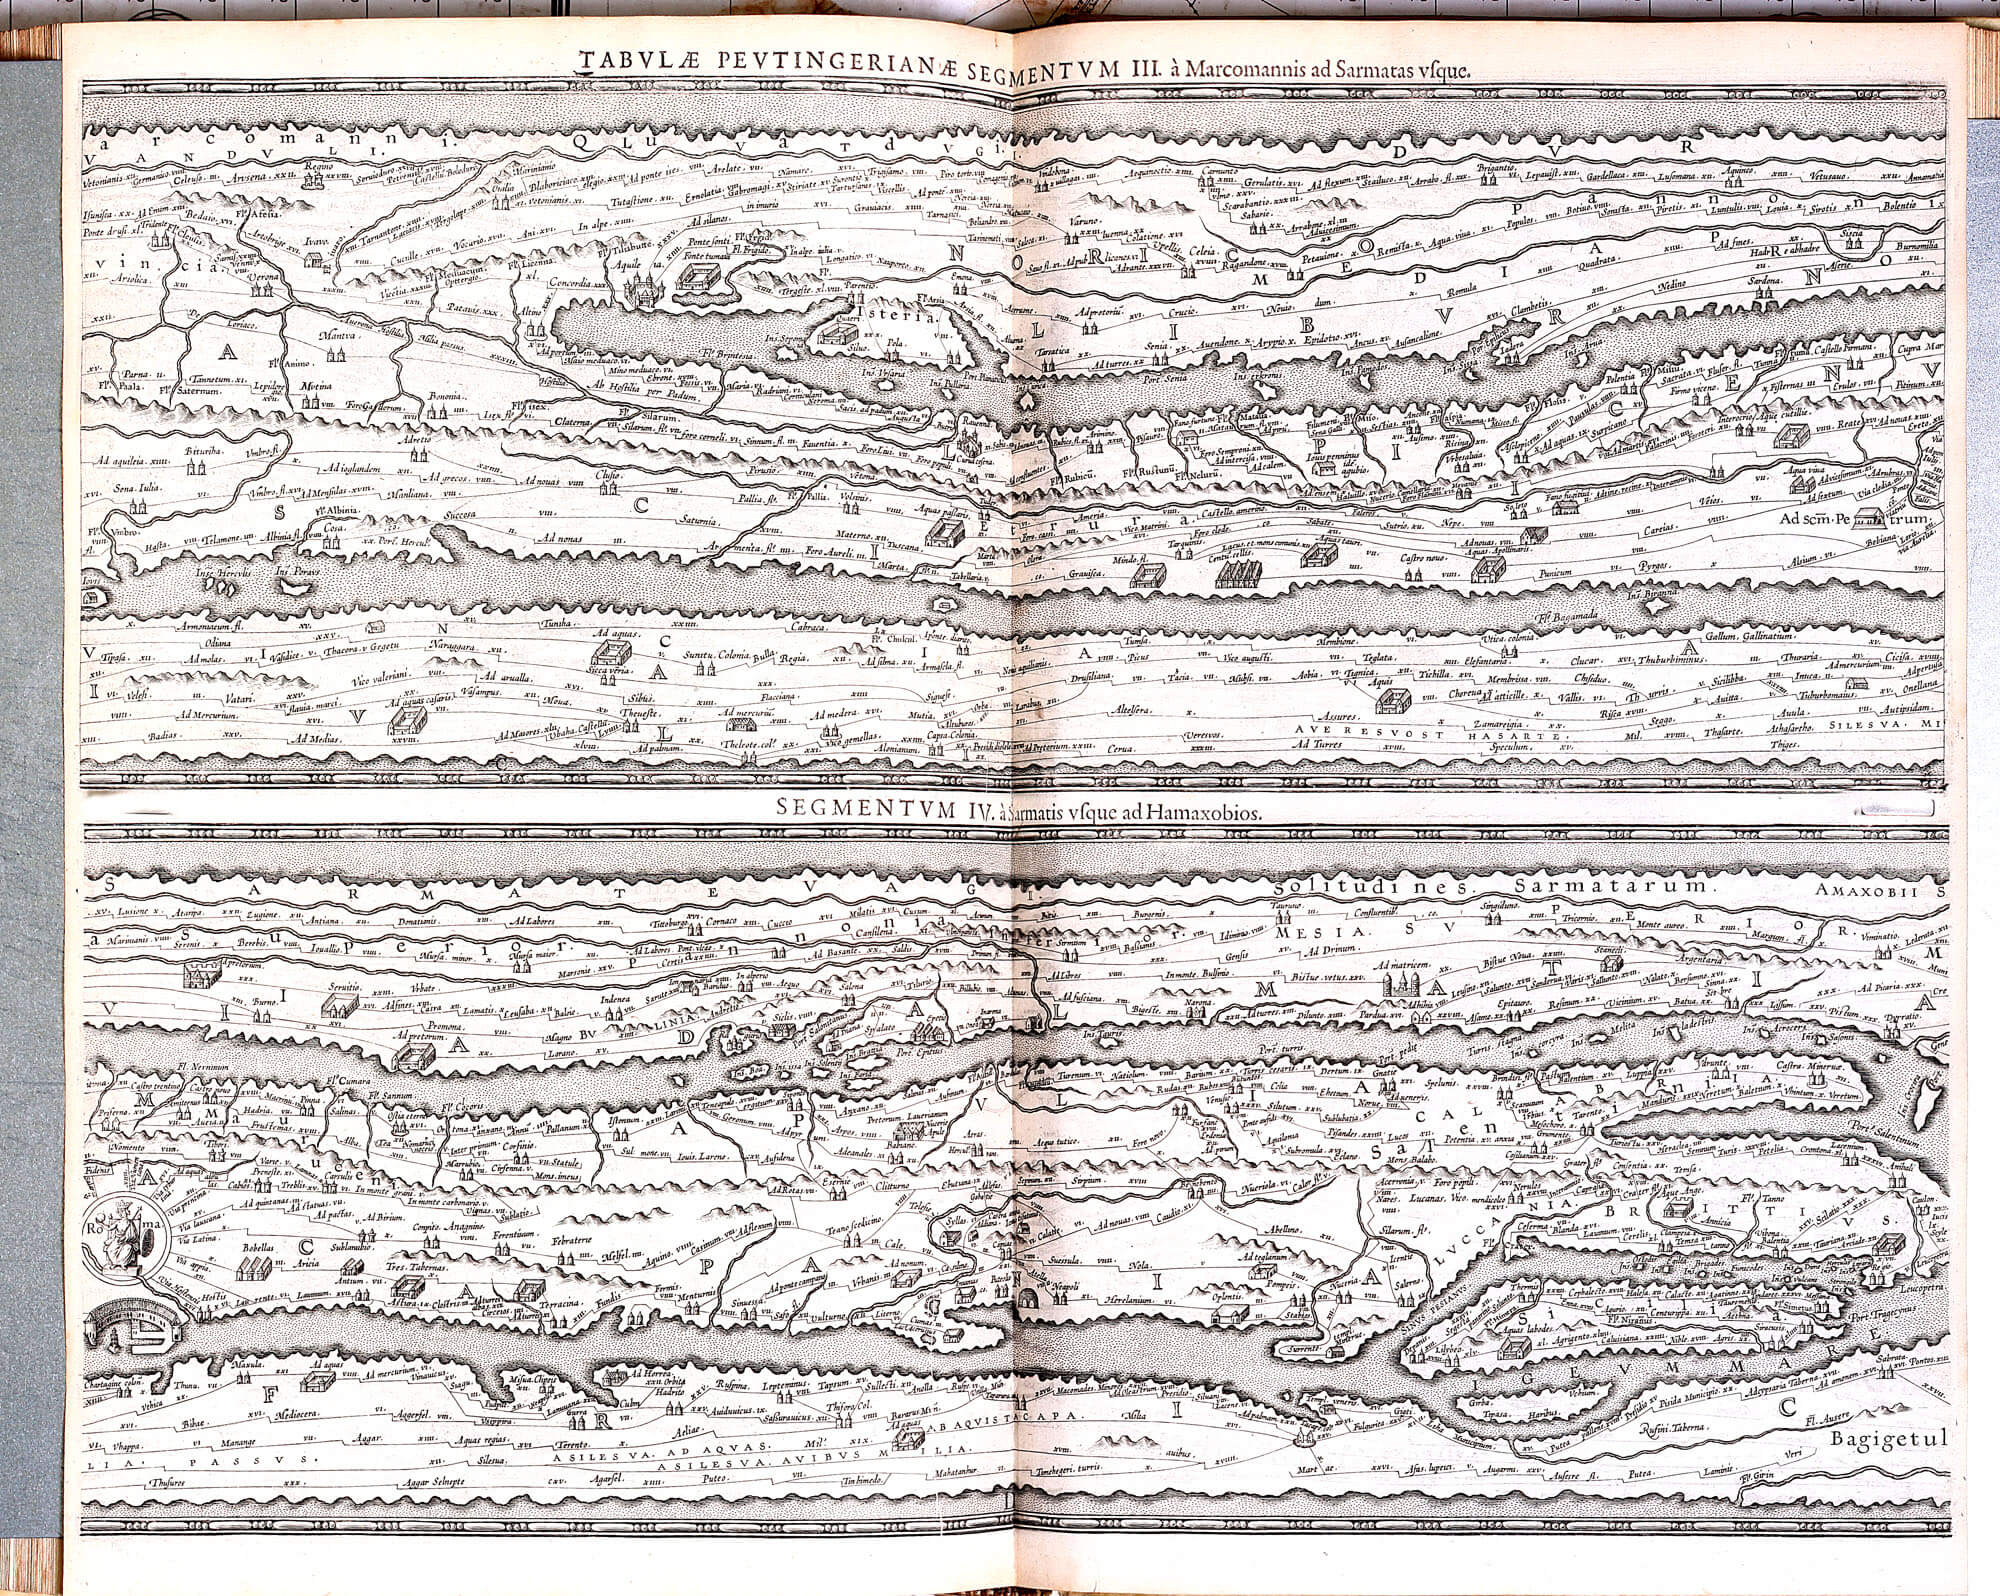 World Atlas C Ptolomy-Peter Bertius 1619 – L Brown Collection